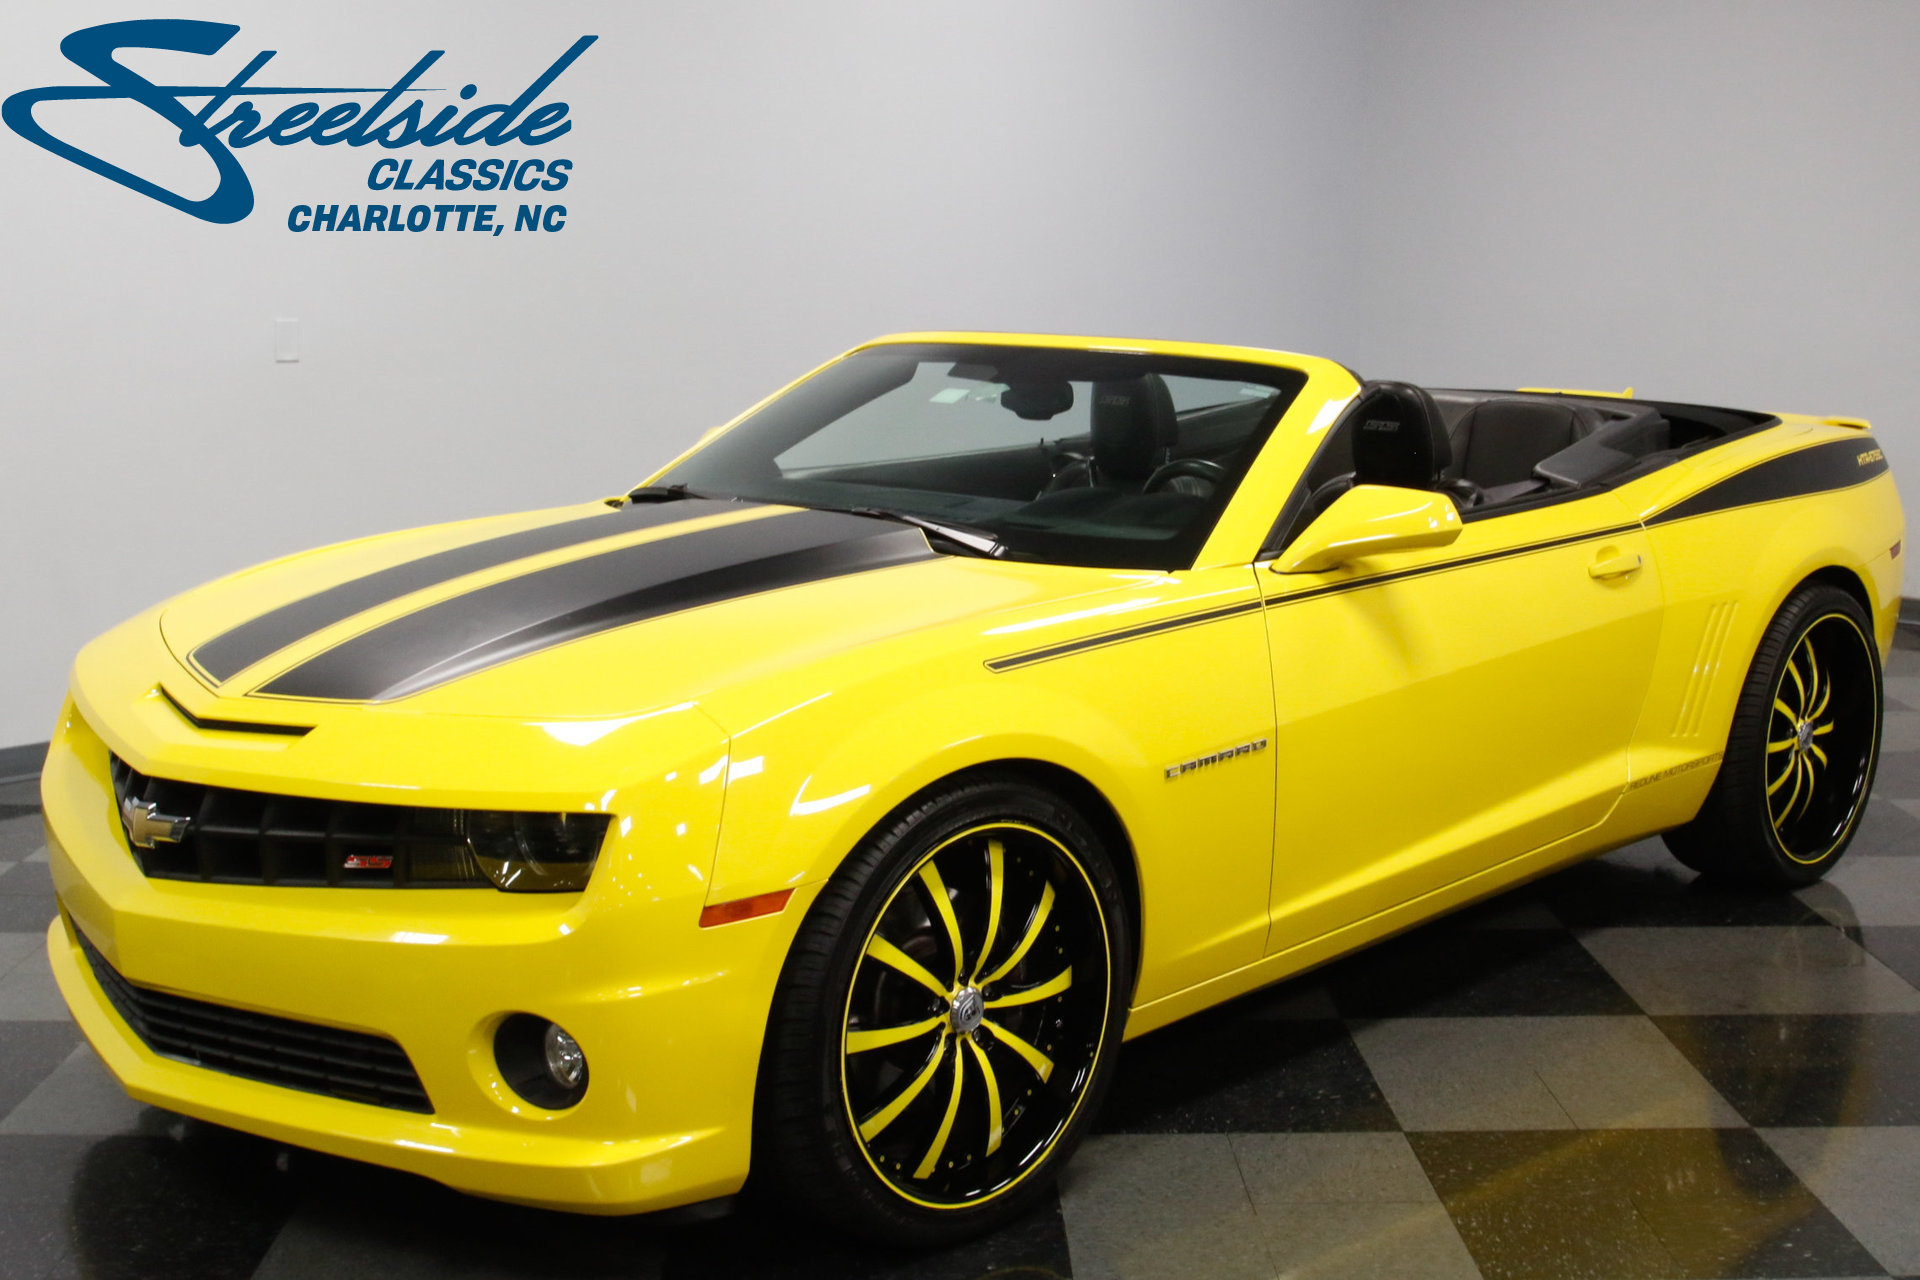 2011 Chevrolet Camaro Streetside Classics The Nation S Trusted Classic Car Consignment Dealer